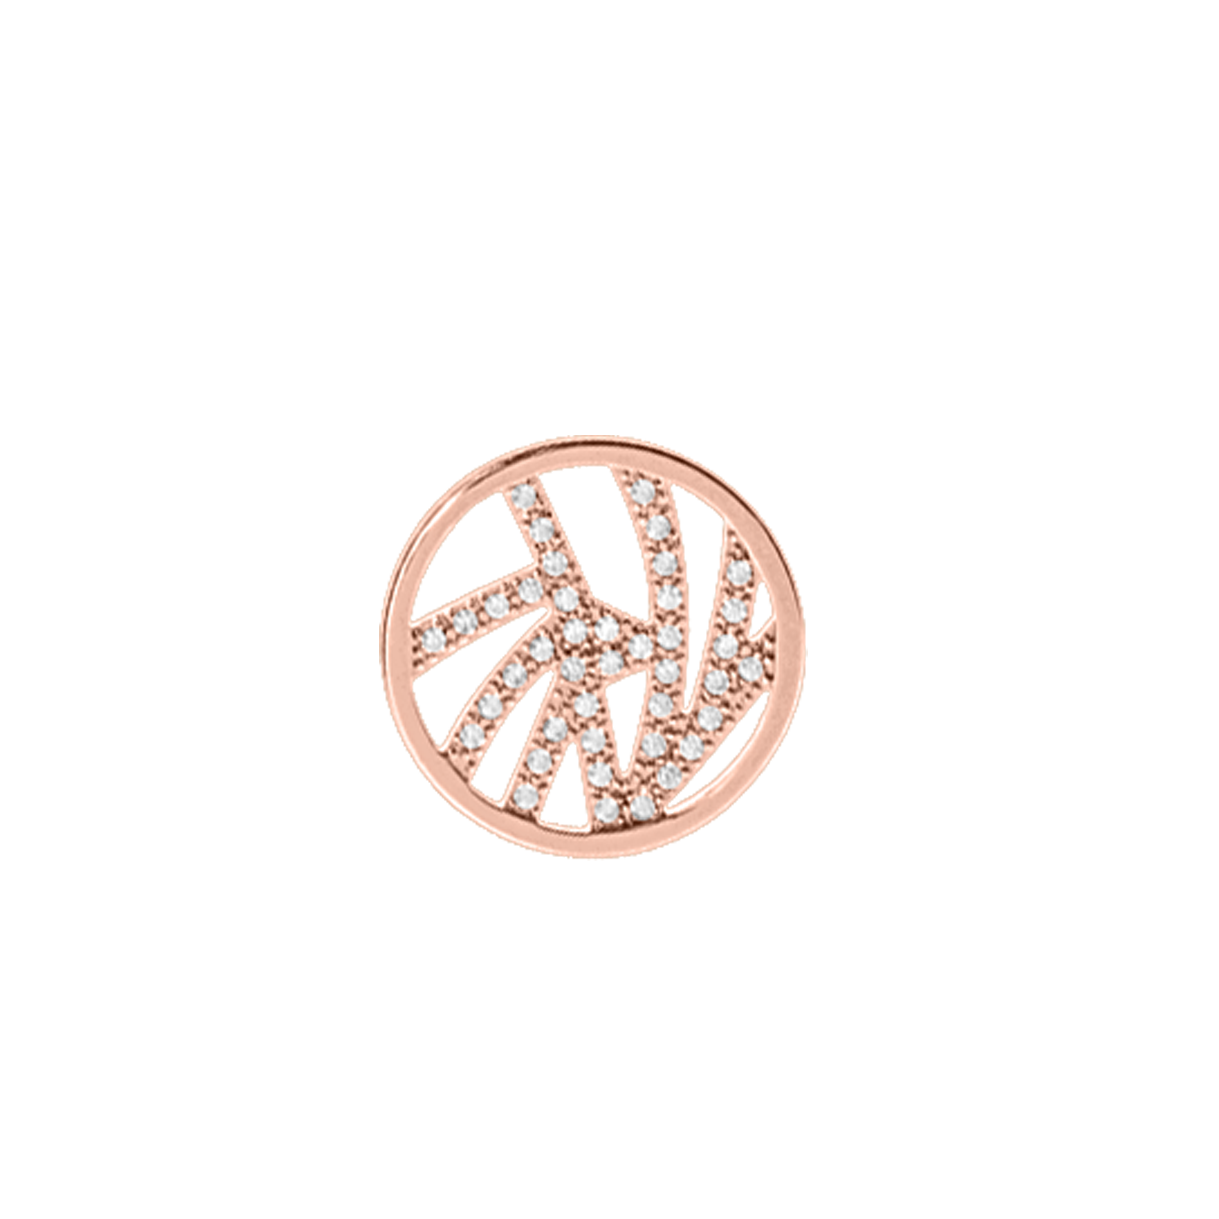 Perroquet token Round 16 mm, Rose gold finish, cubic zirconia image number 1